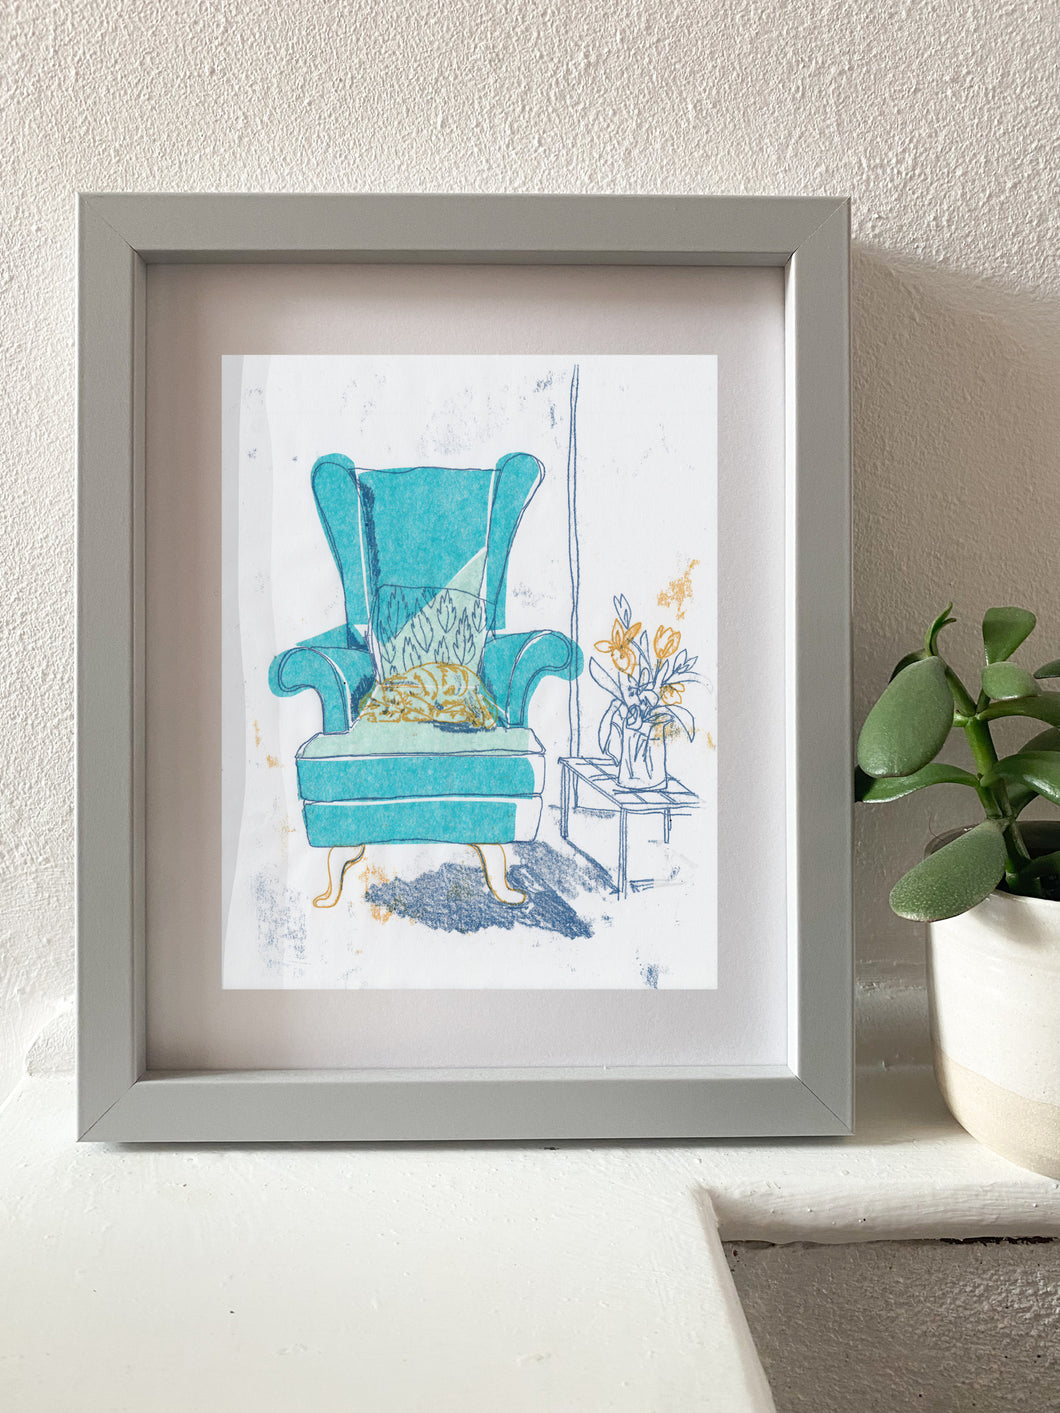 Turquoise Armchair - monotype with chine-collé